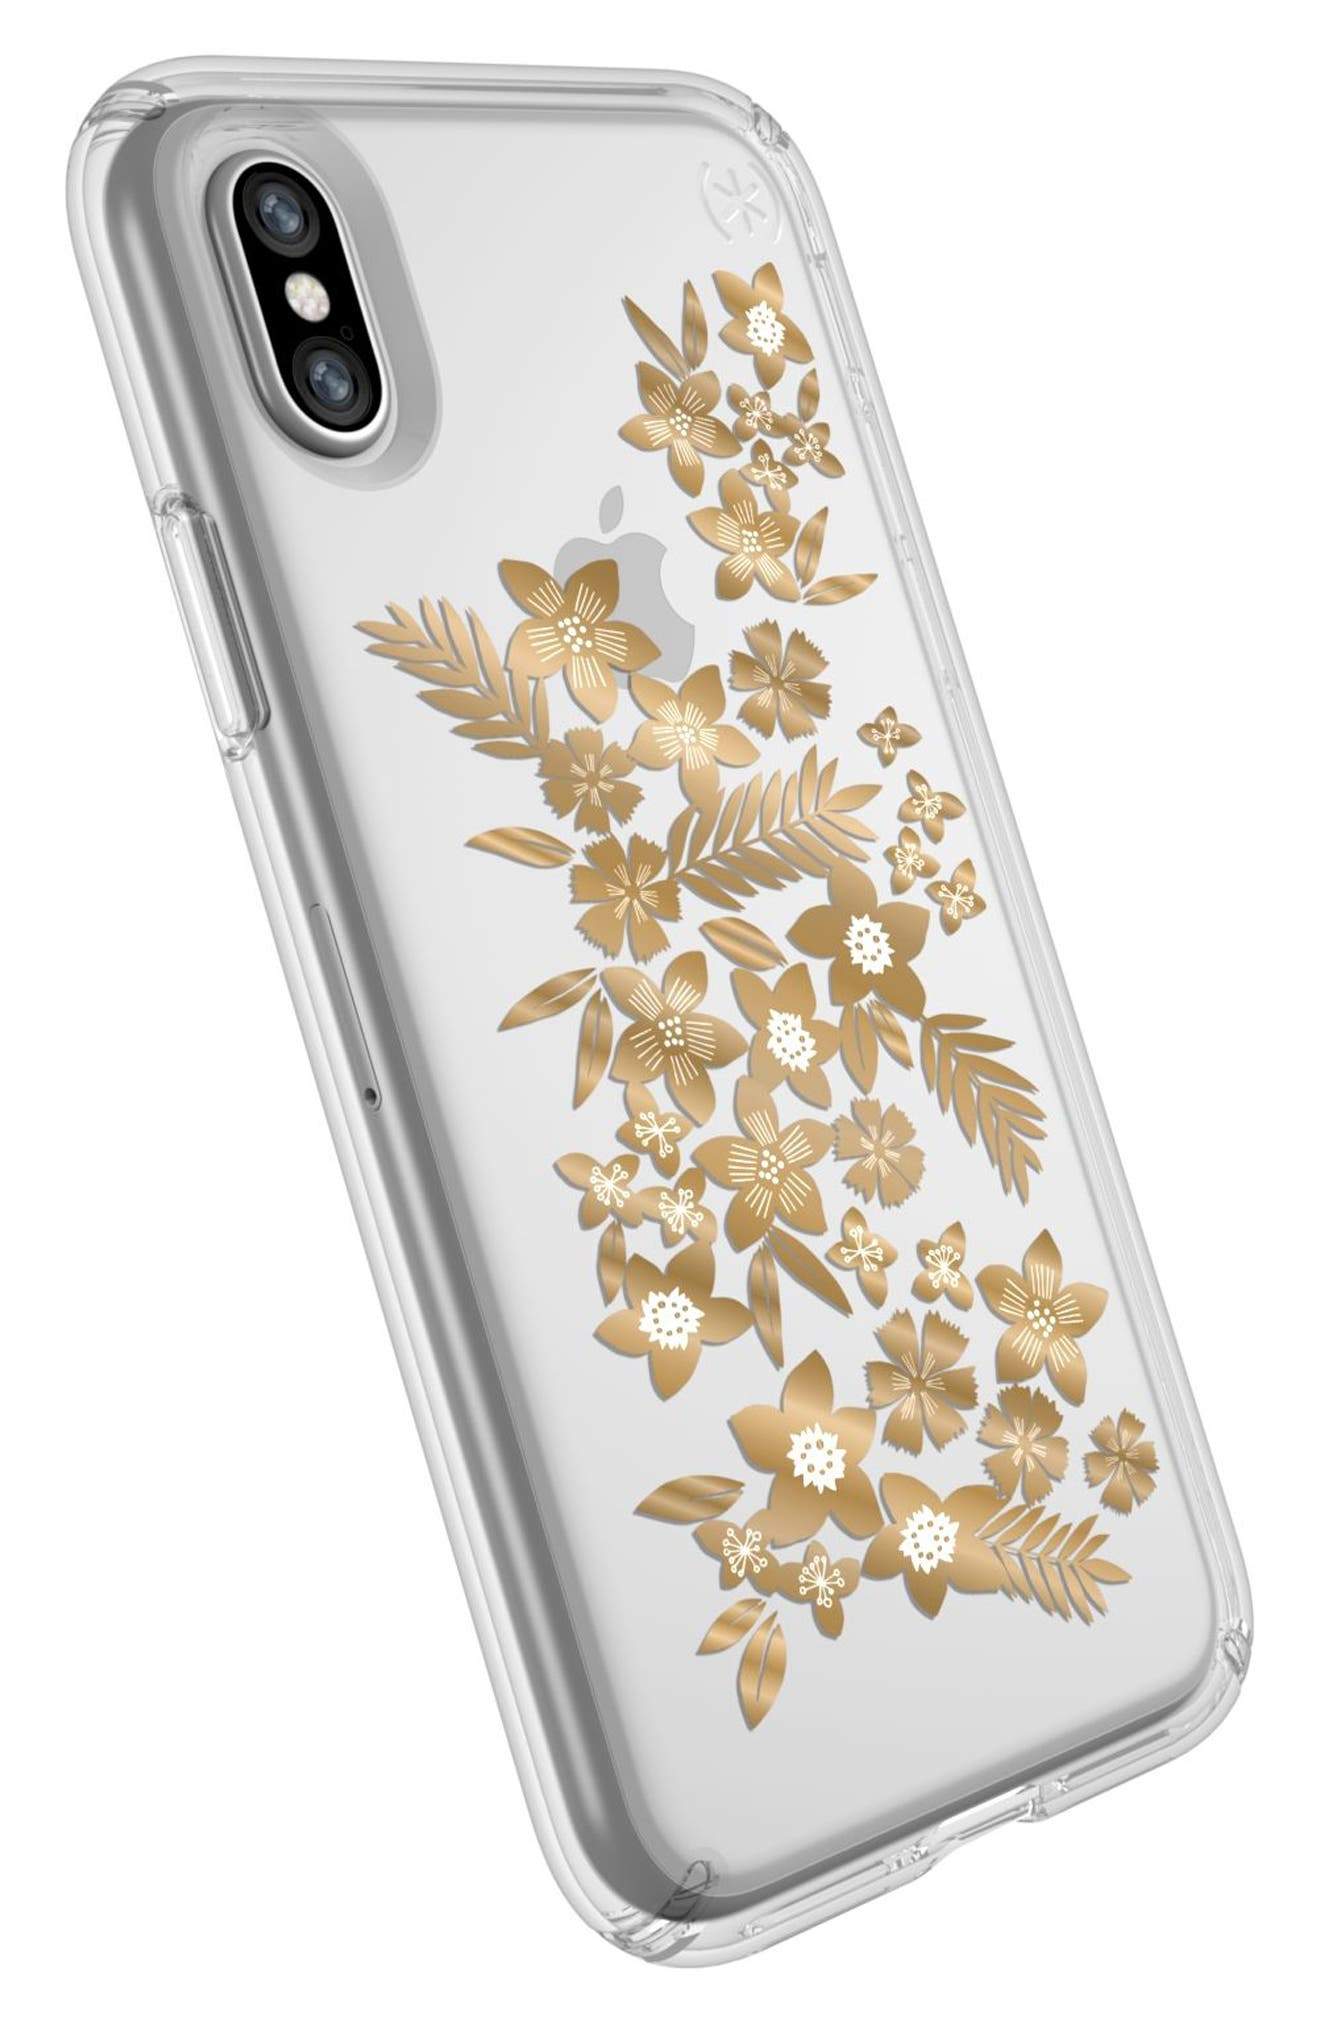 Shimmer Metallic Floral Transparent iPhone X Case,                             Alternate thumbnail 4, color,                             Shimmer Floral Metallic/ Clear